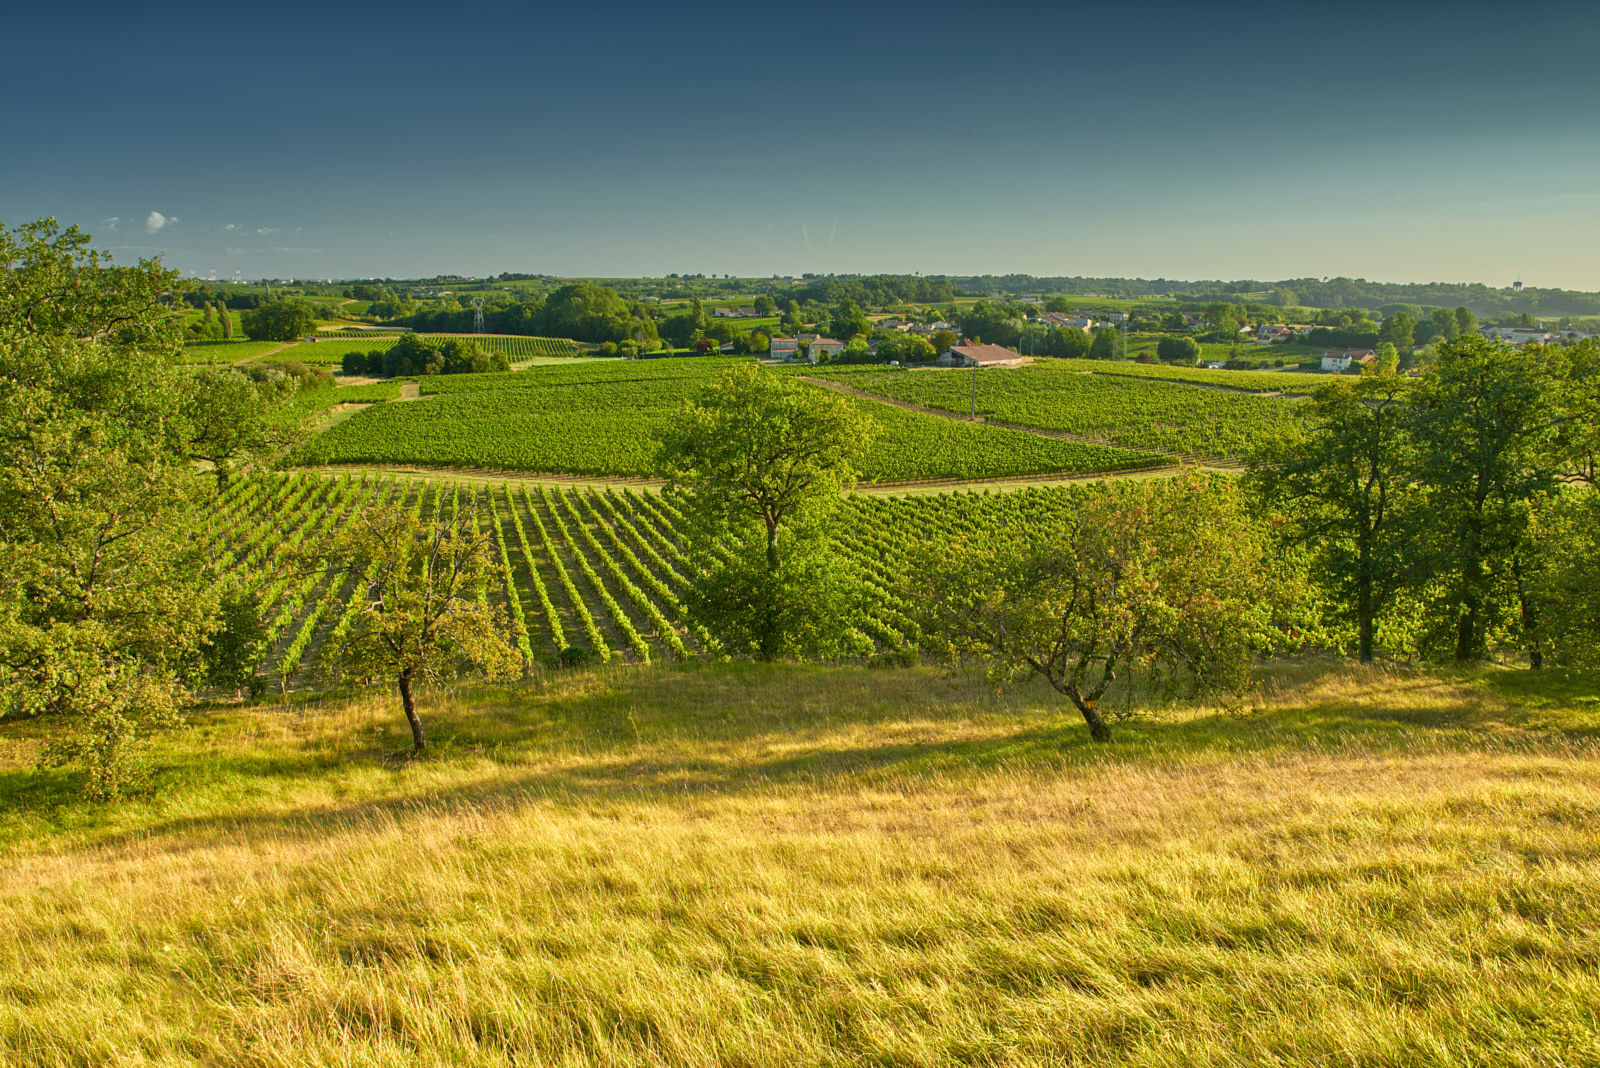 Photographie de vignoble